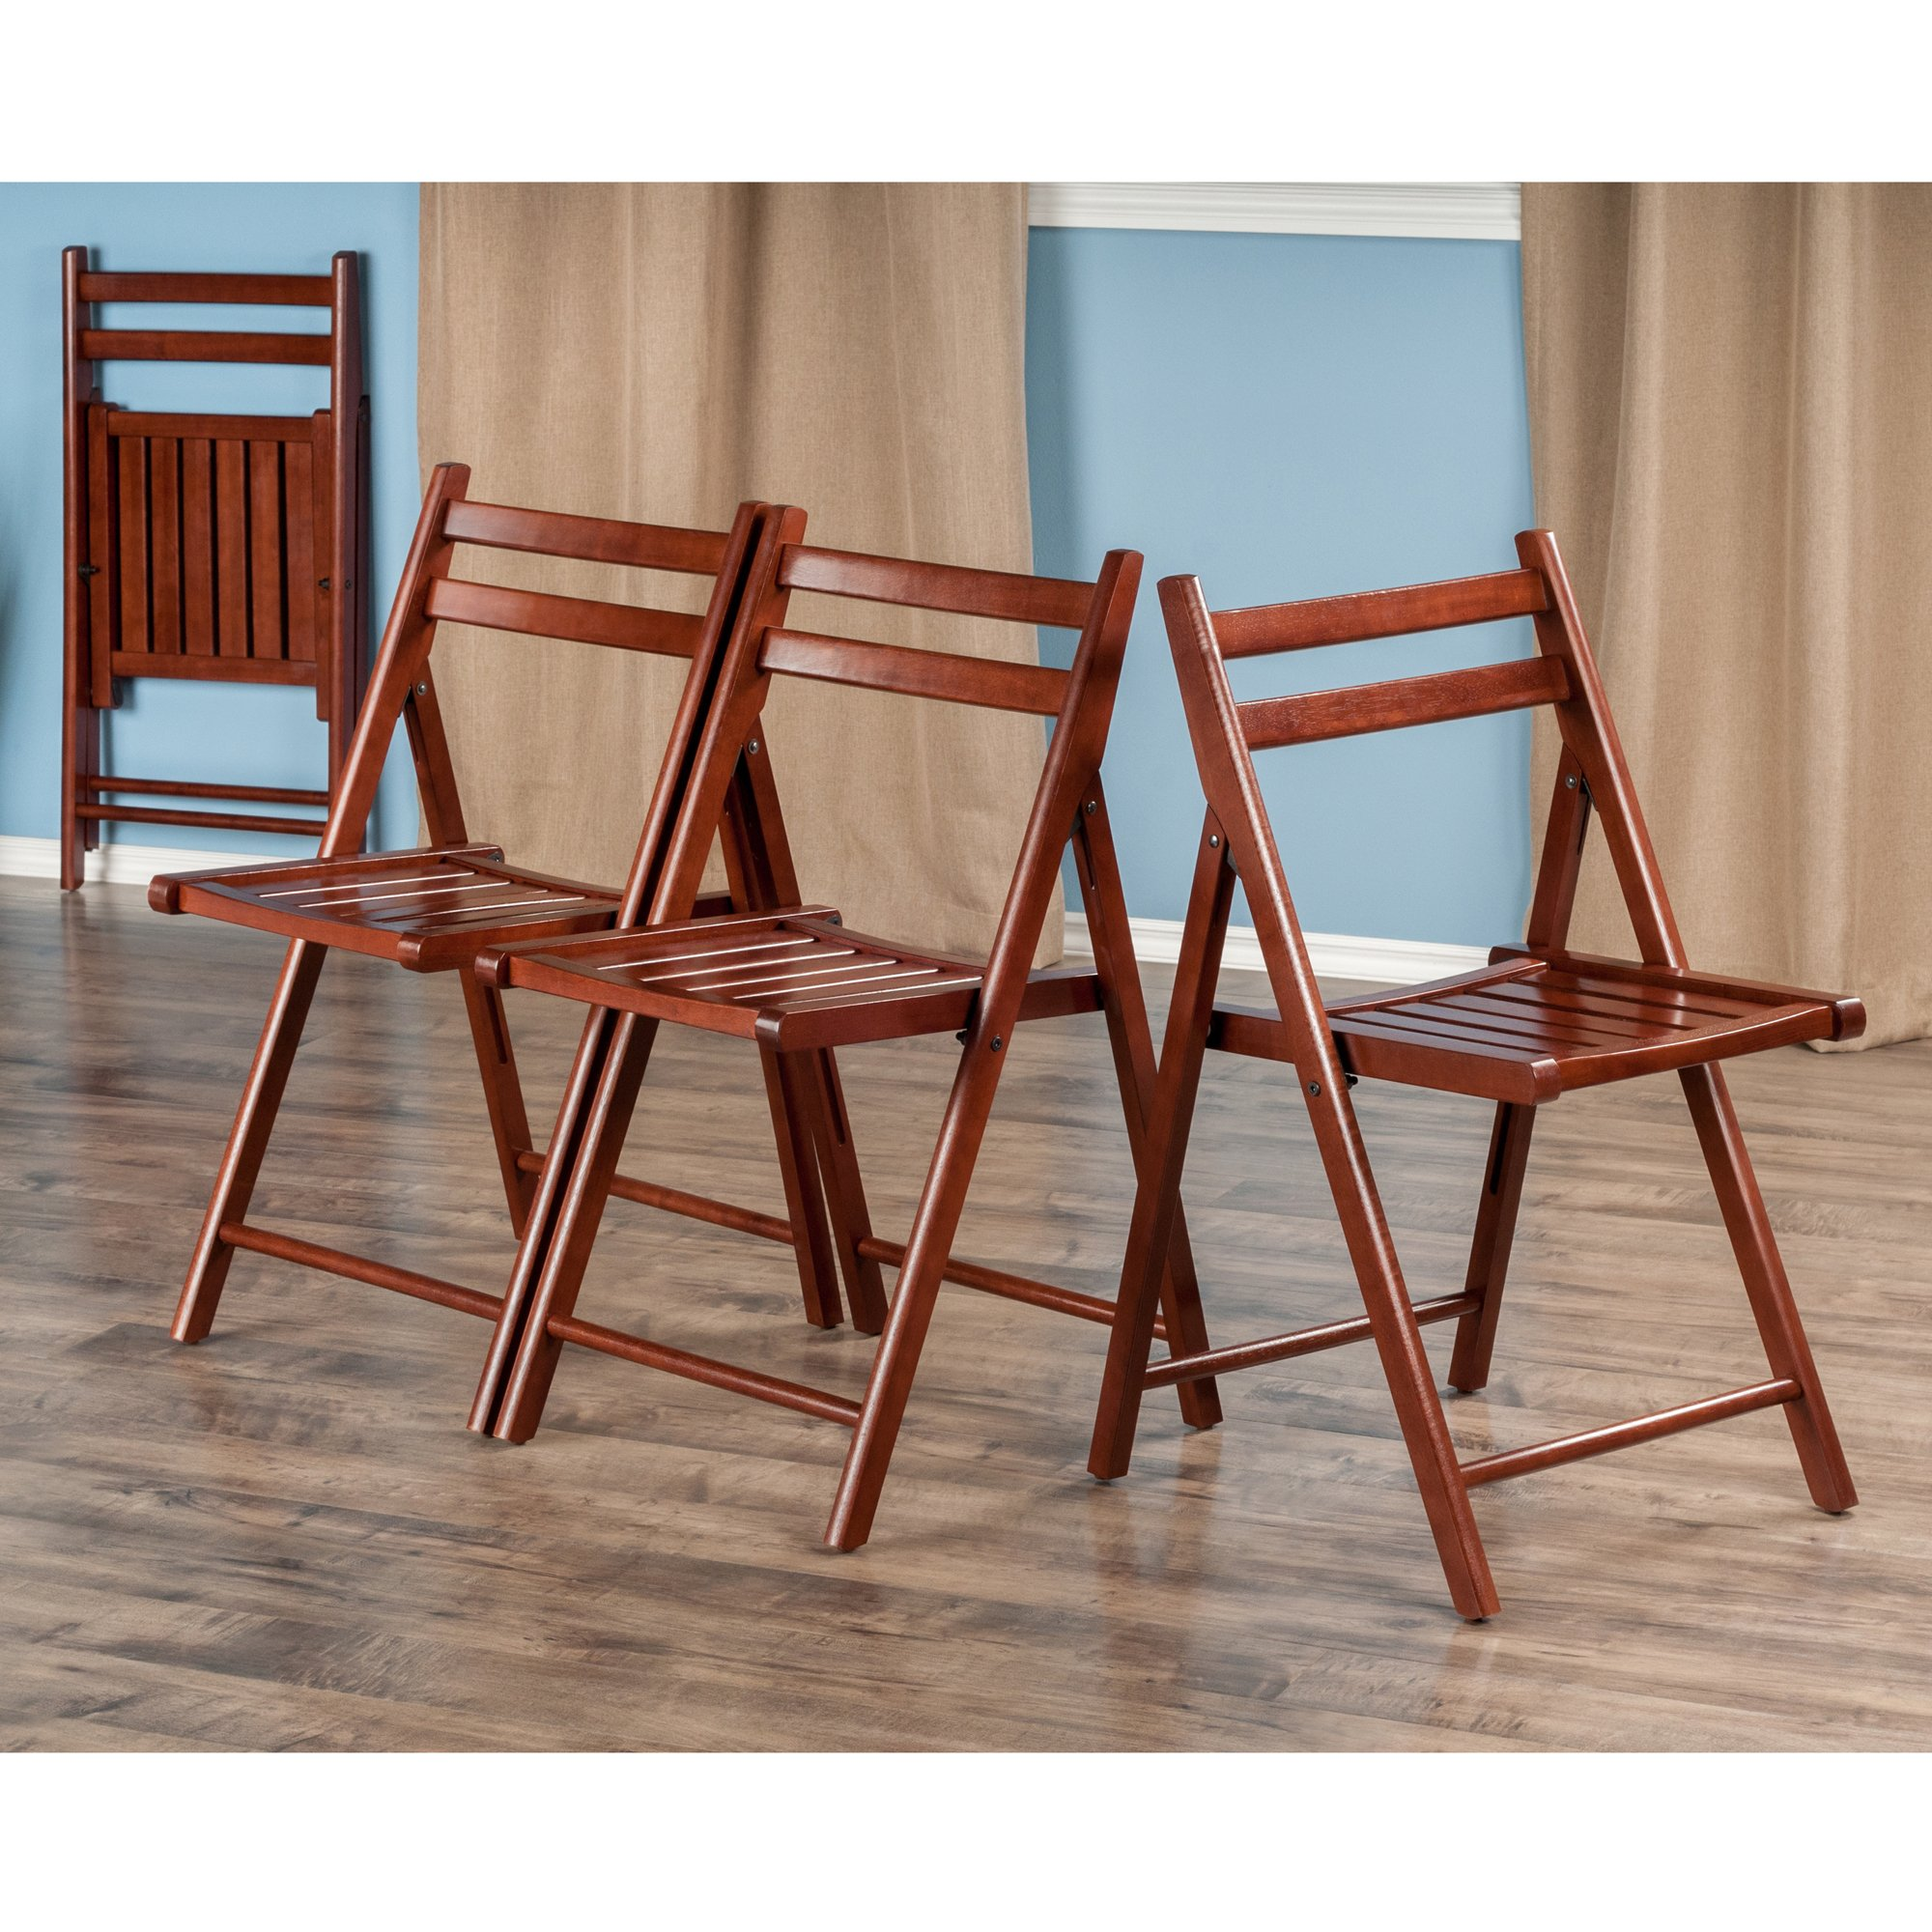 Winsome Wood Robin 4 Piece Folding Chair Set Walnut by Winsome Wood (Image #4)